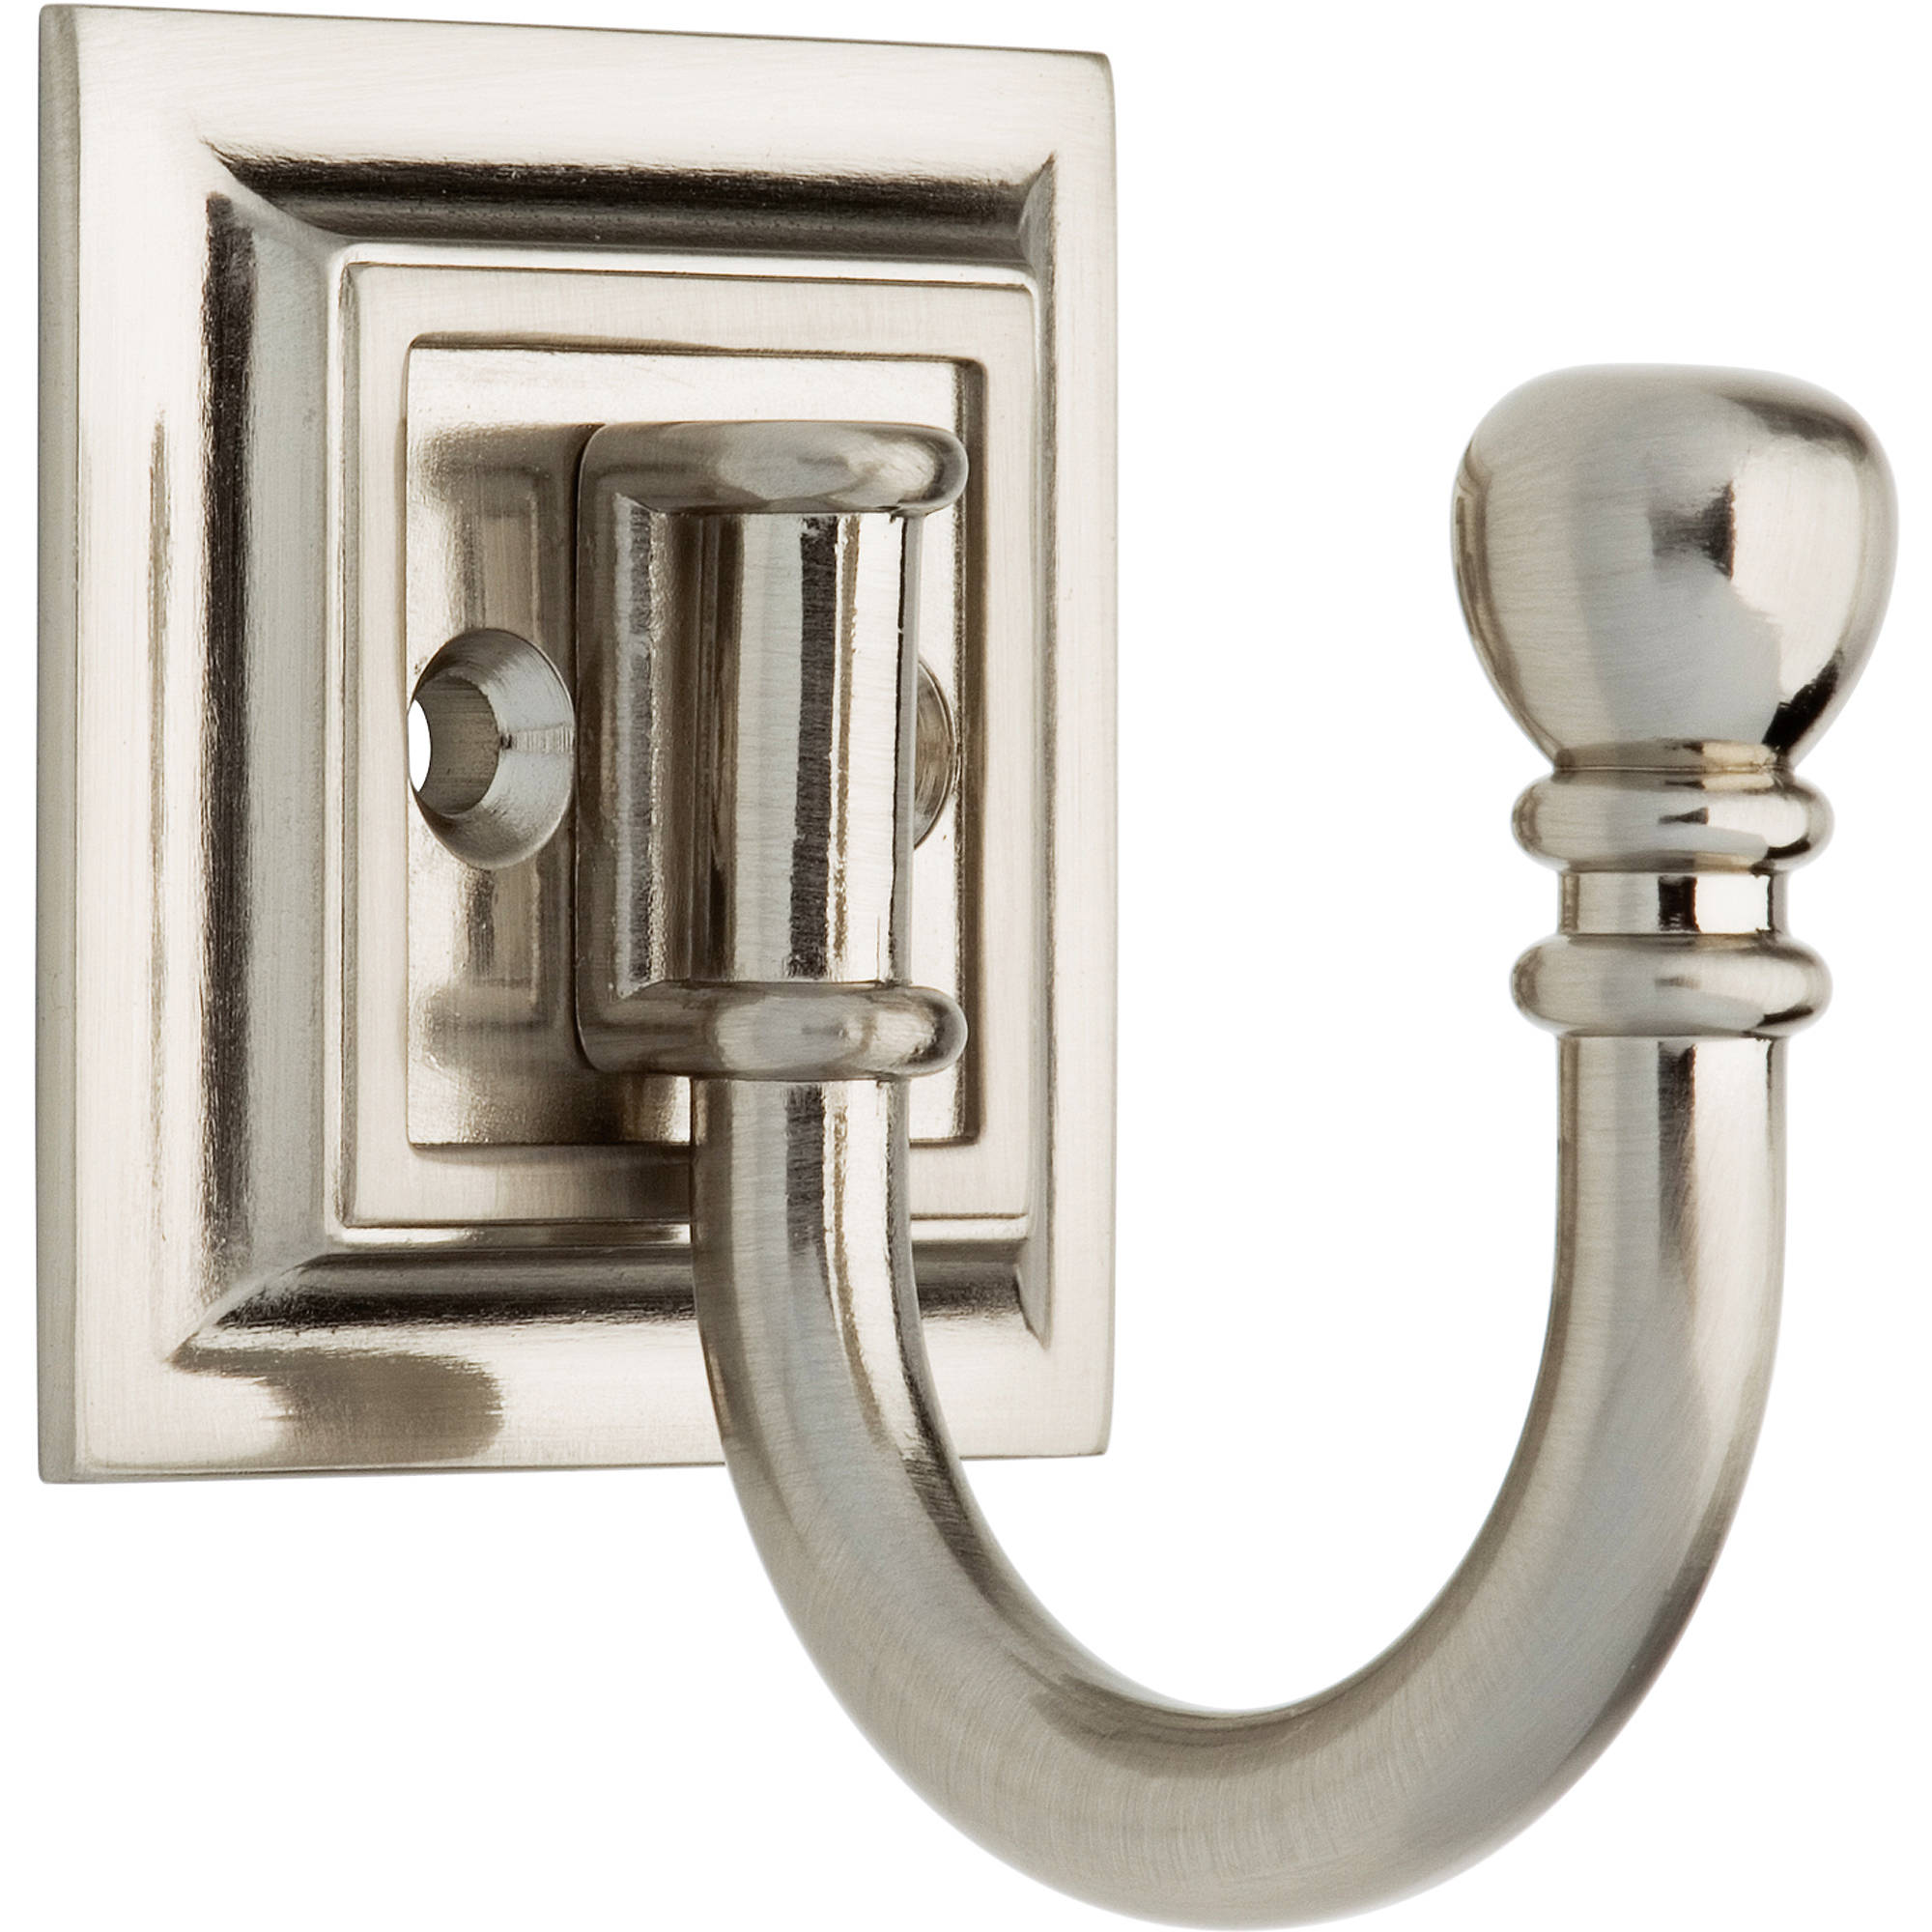 Brainerd Architectural Single Prong Hook, Available in Multiple Colors by Liberty Hardware